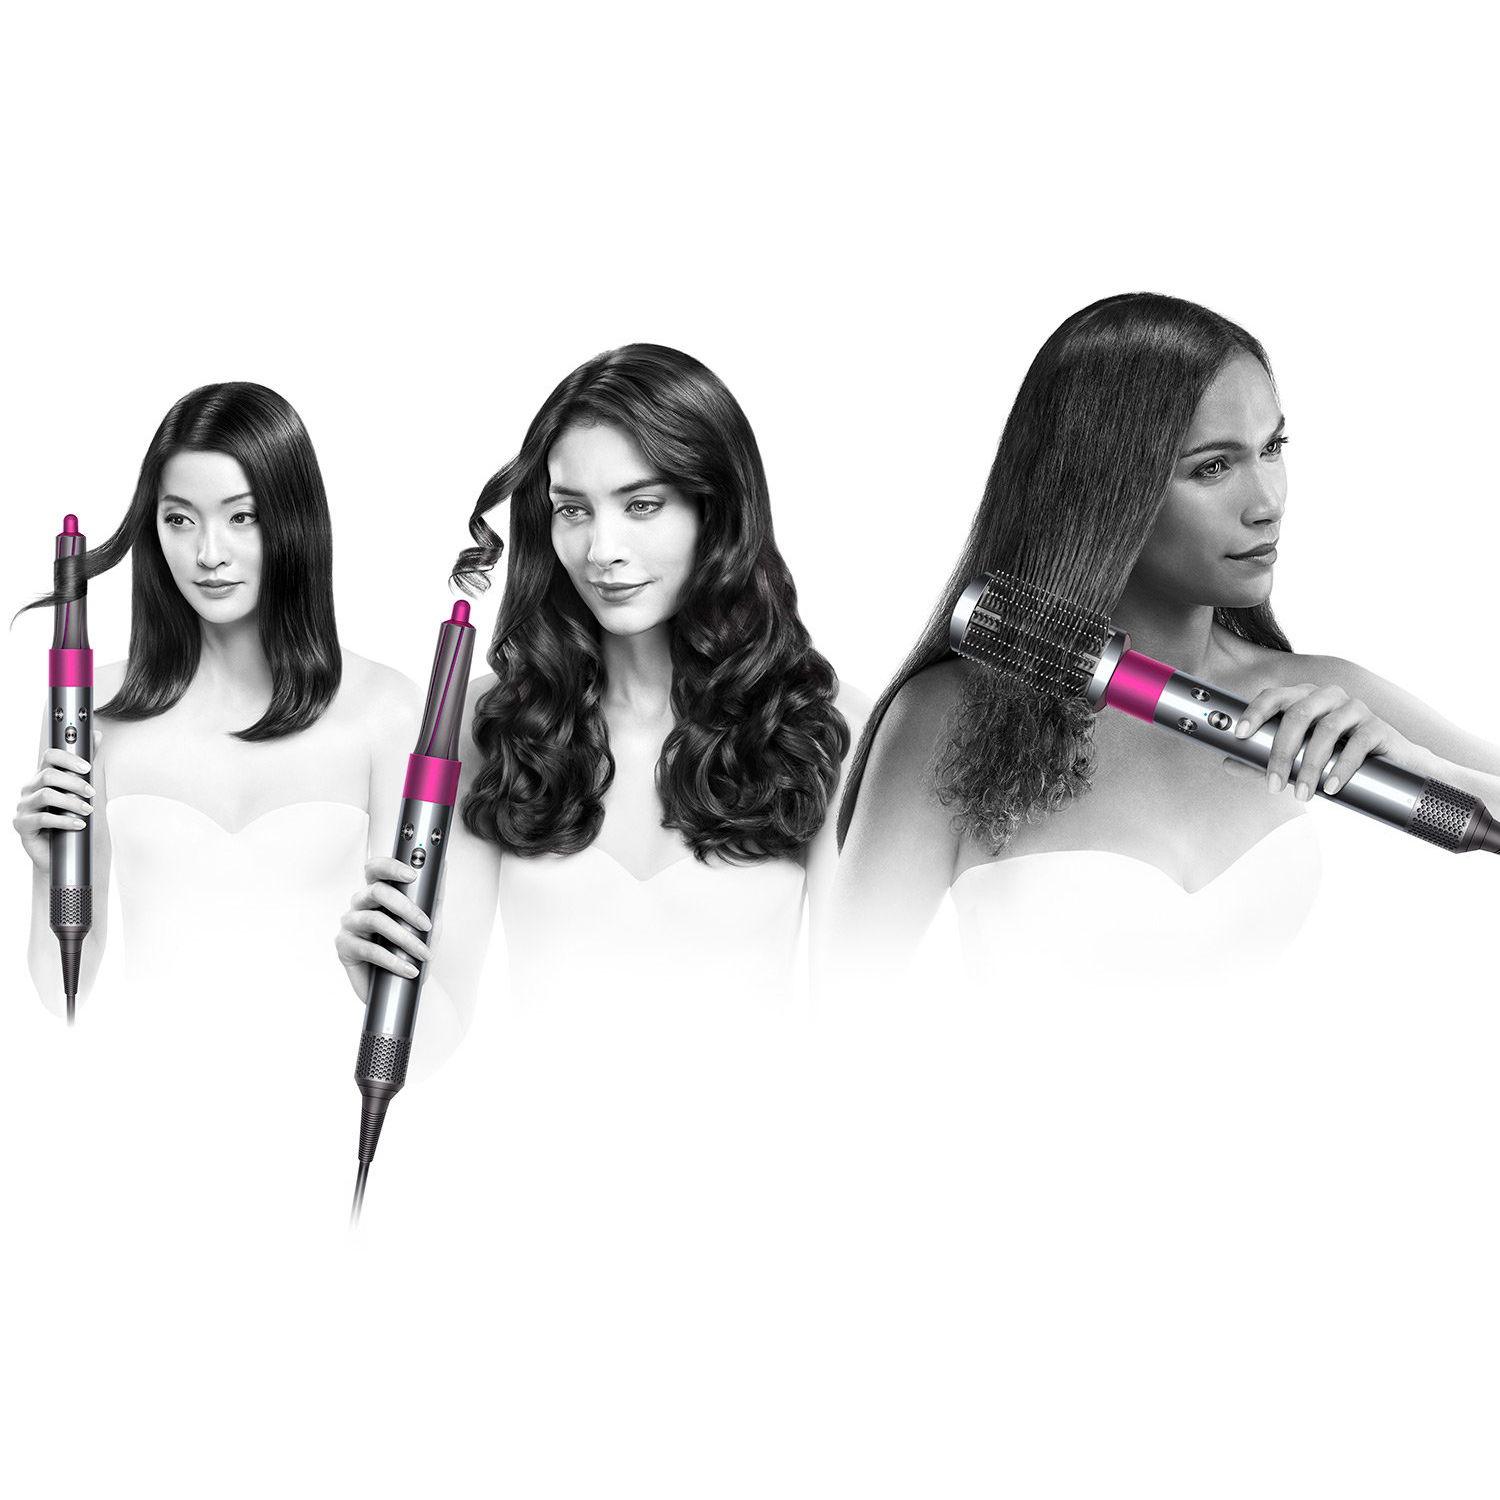 Dyson Airwrap Complete Styler Hair Styling Set Pre-Styling Dryer 4 Curling Barrels 2 Smoothing Brushes and Volumizing Brush 8